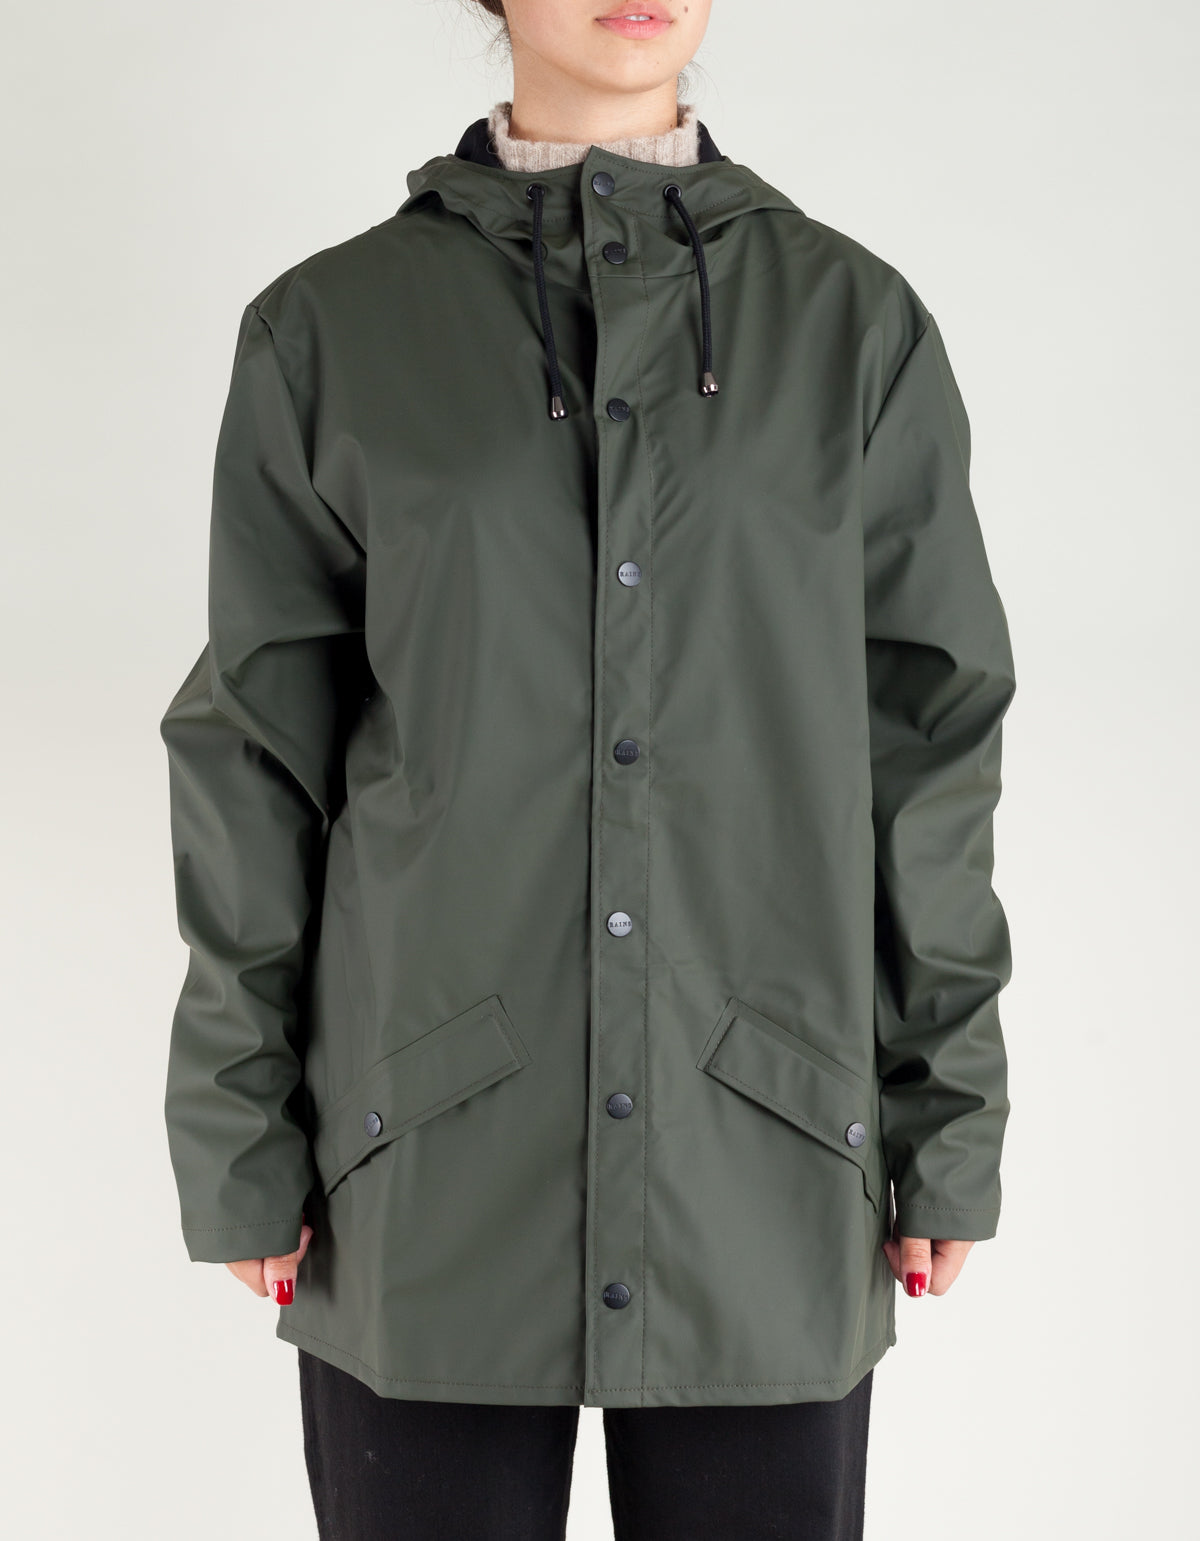 Rains Women's Jacket Green